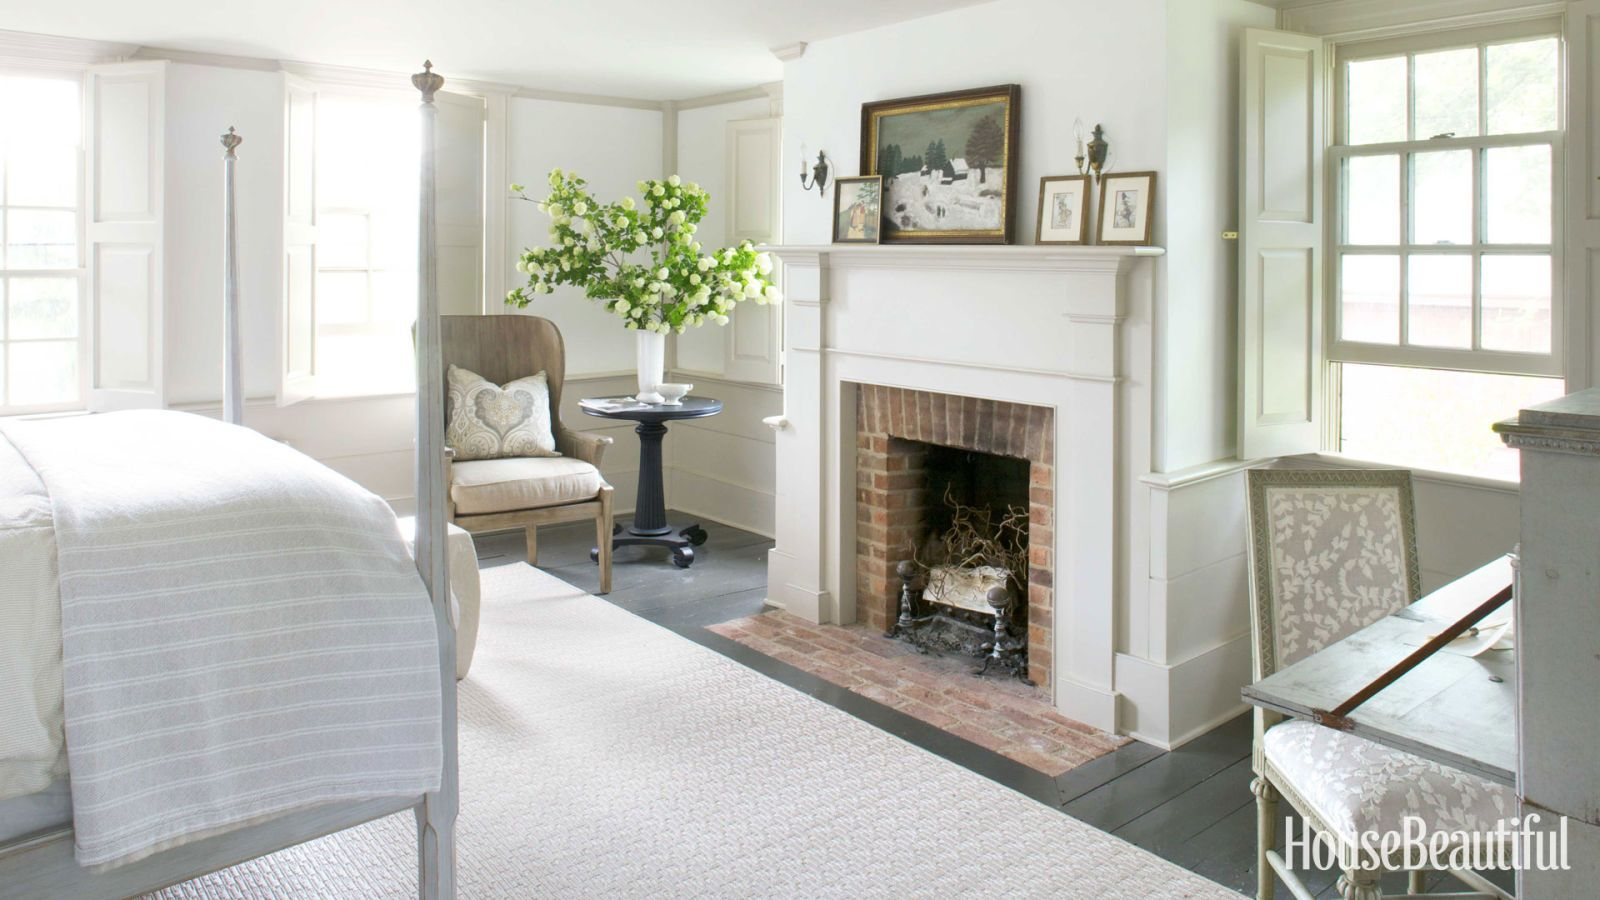 House Beautiful.com 1830S Greek Revival House Httpwww.housebeautifuldesign